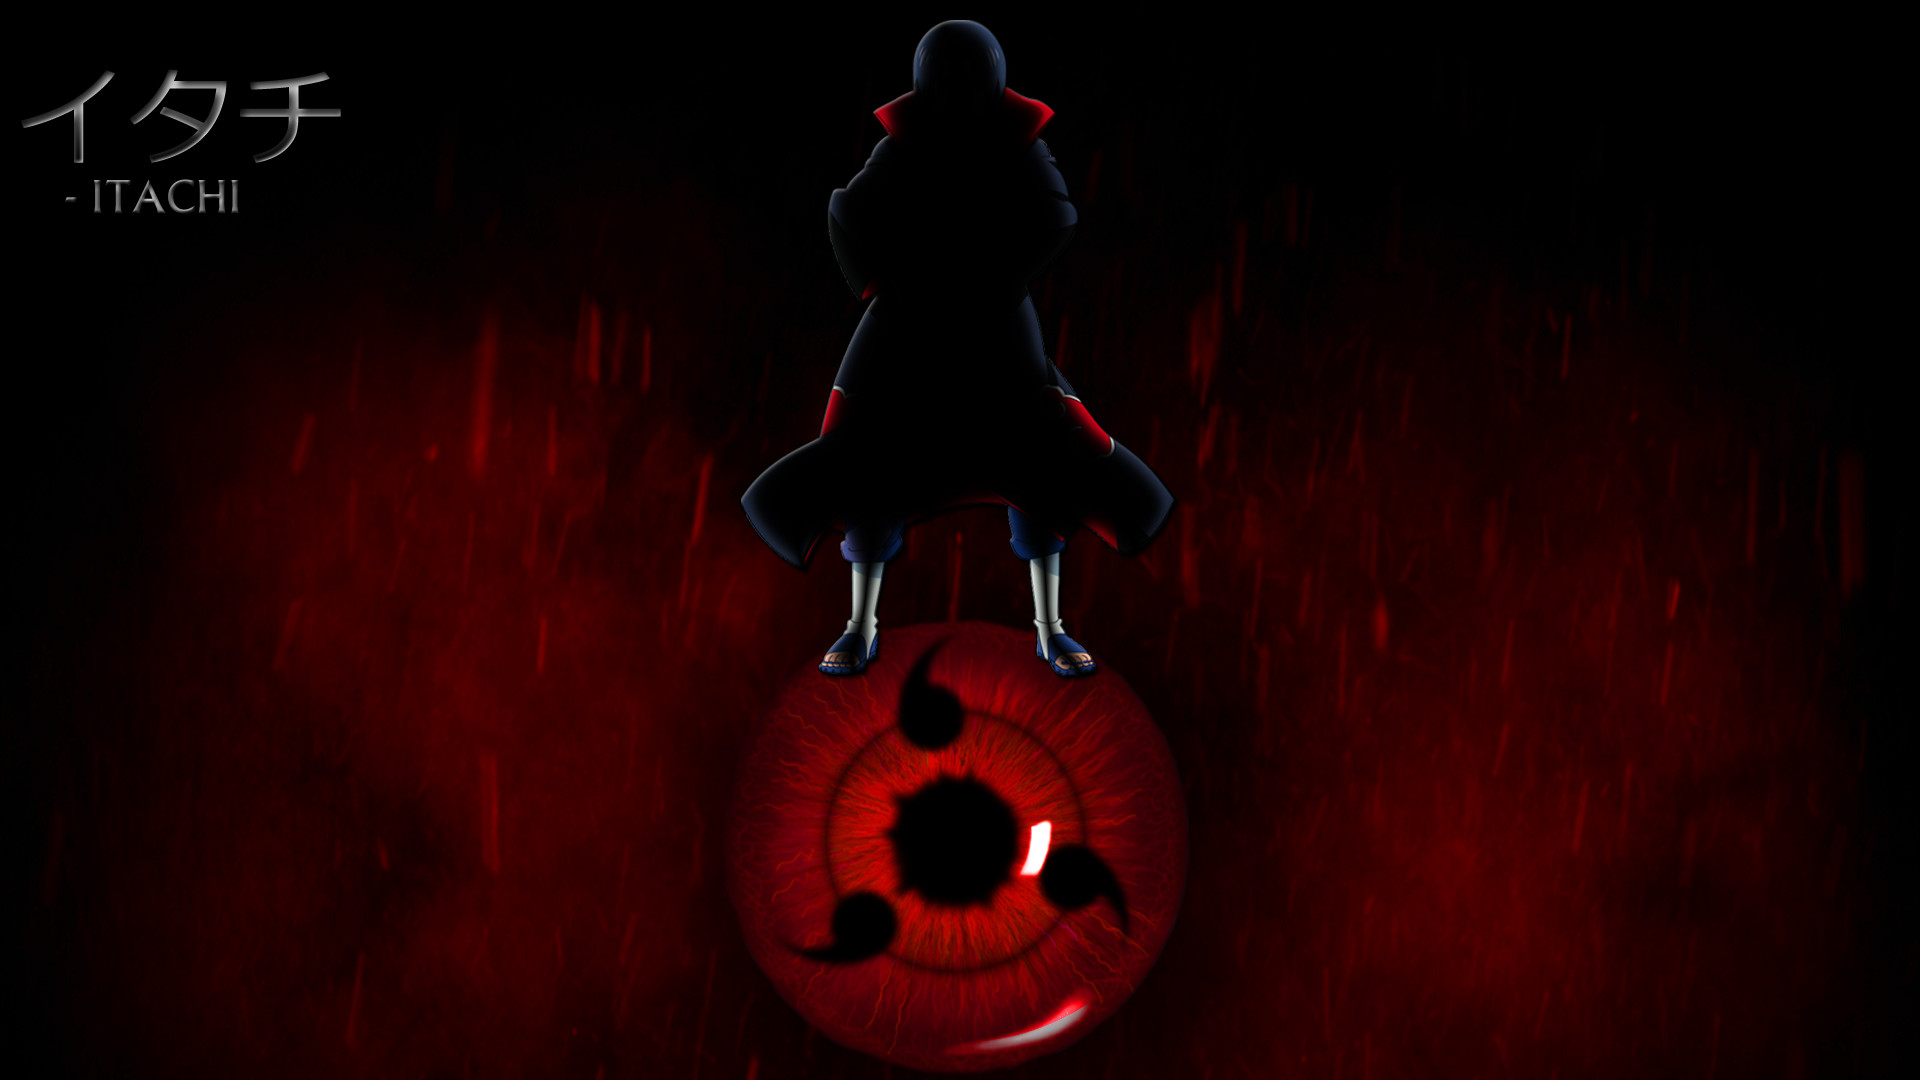 1920x1080 Itachi Sharingan Wallpaper Hd More Information Findyou Info